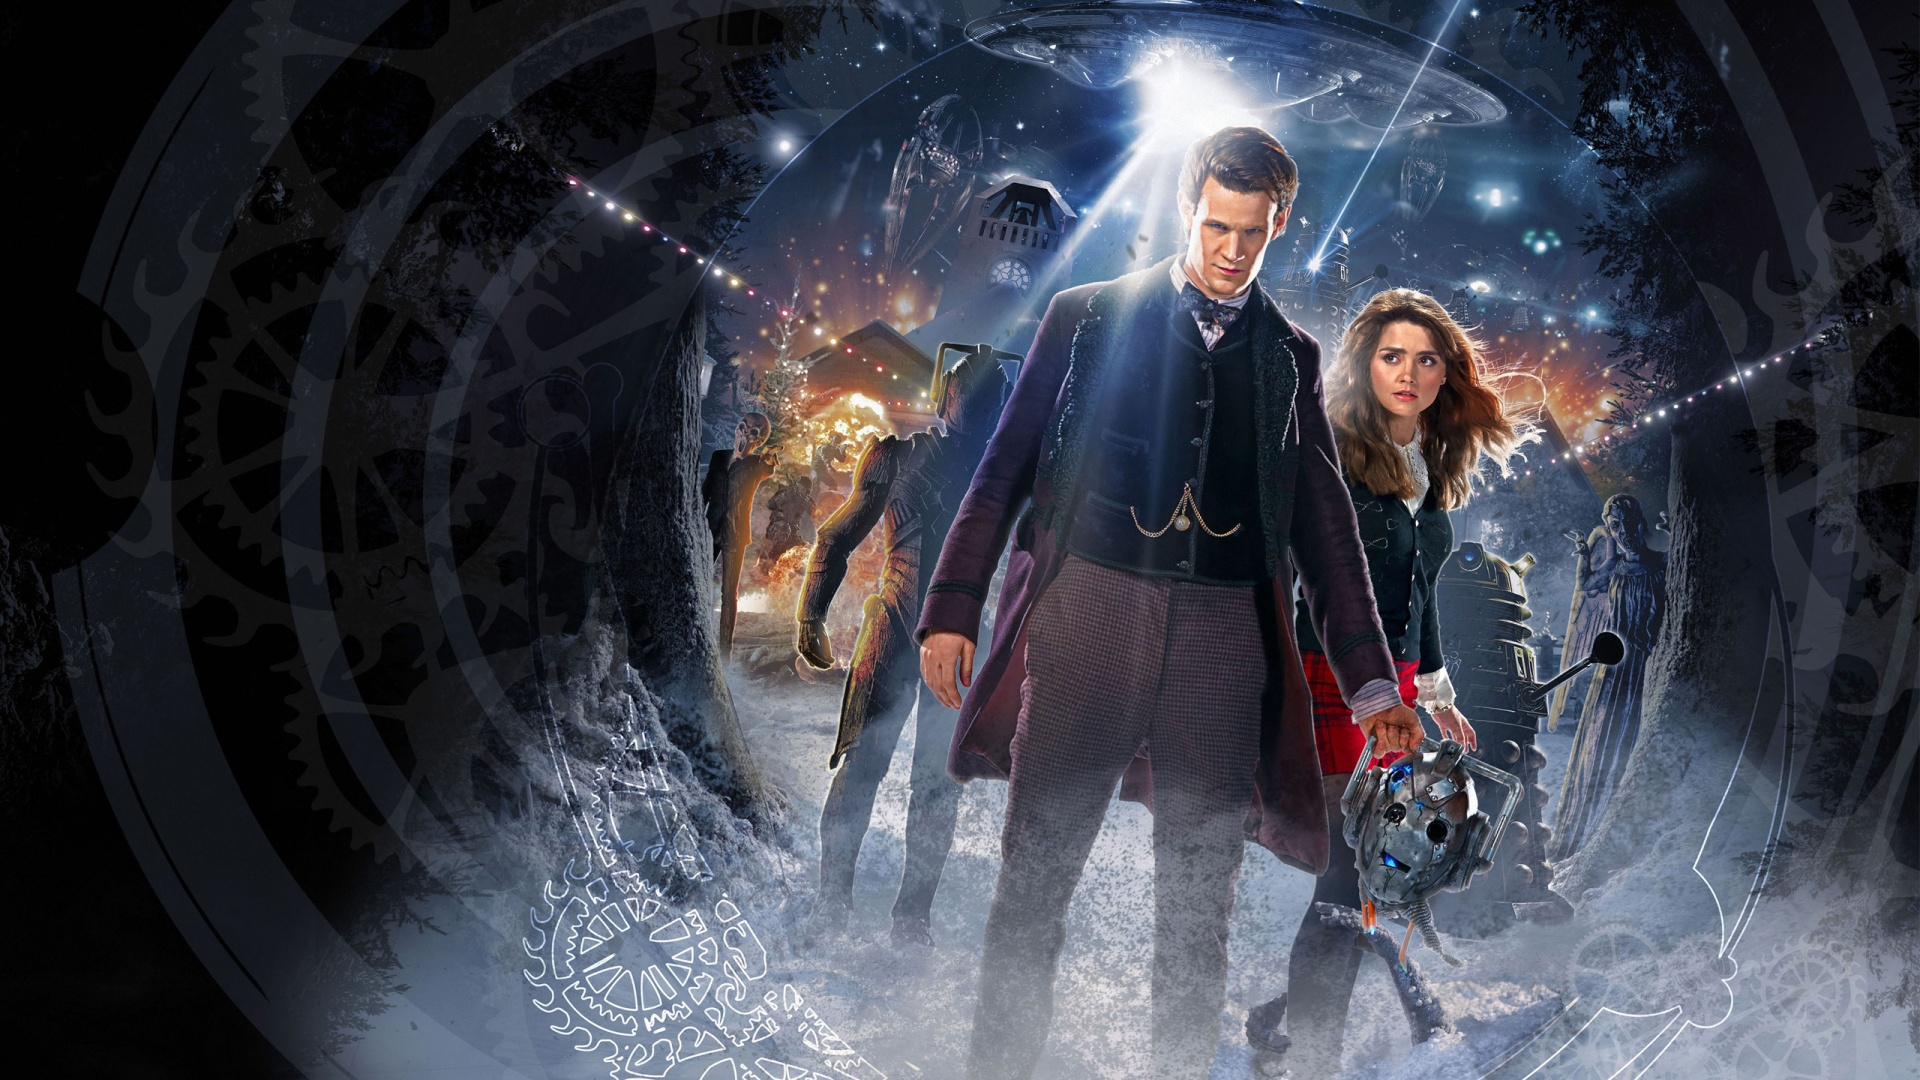 Doctor Who Hd Wallpaper Background Image 1920x1080 Id 690007